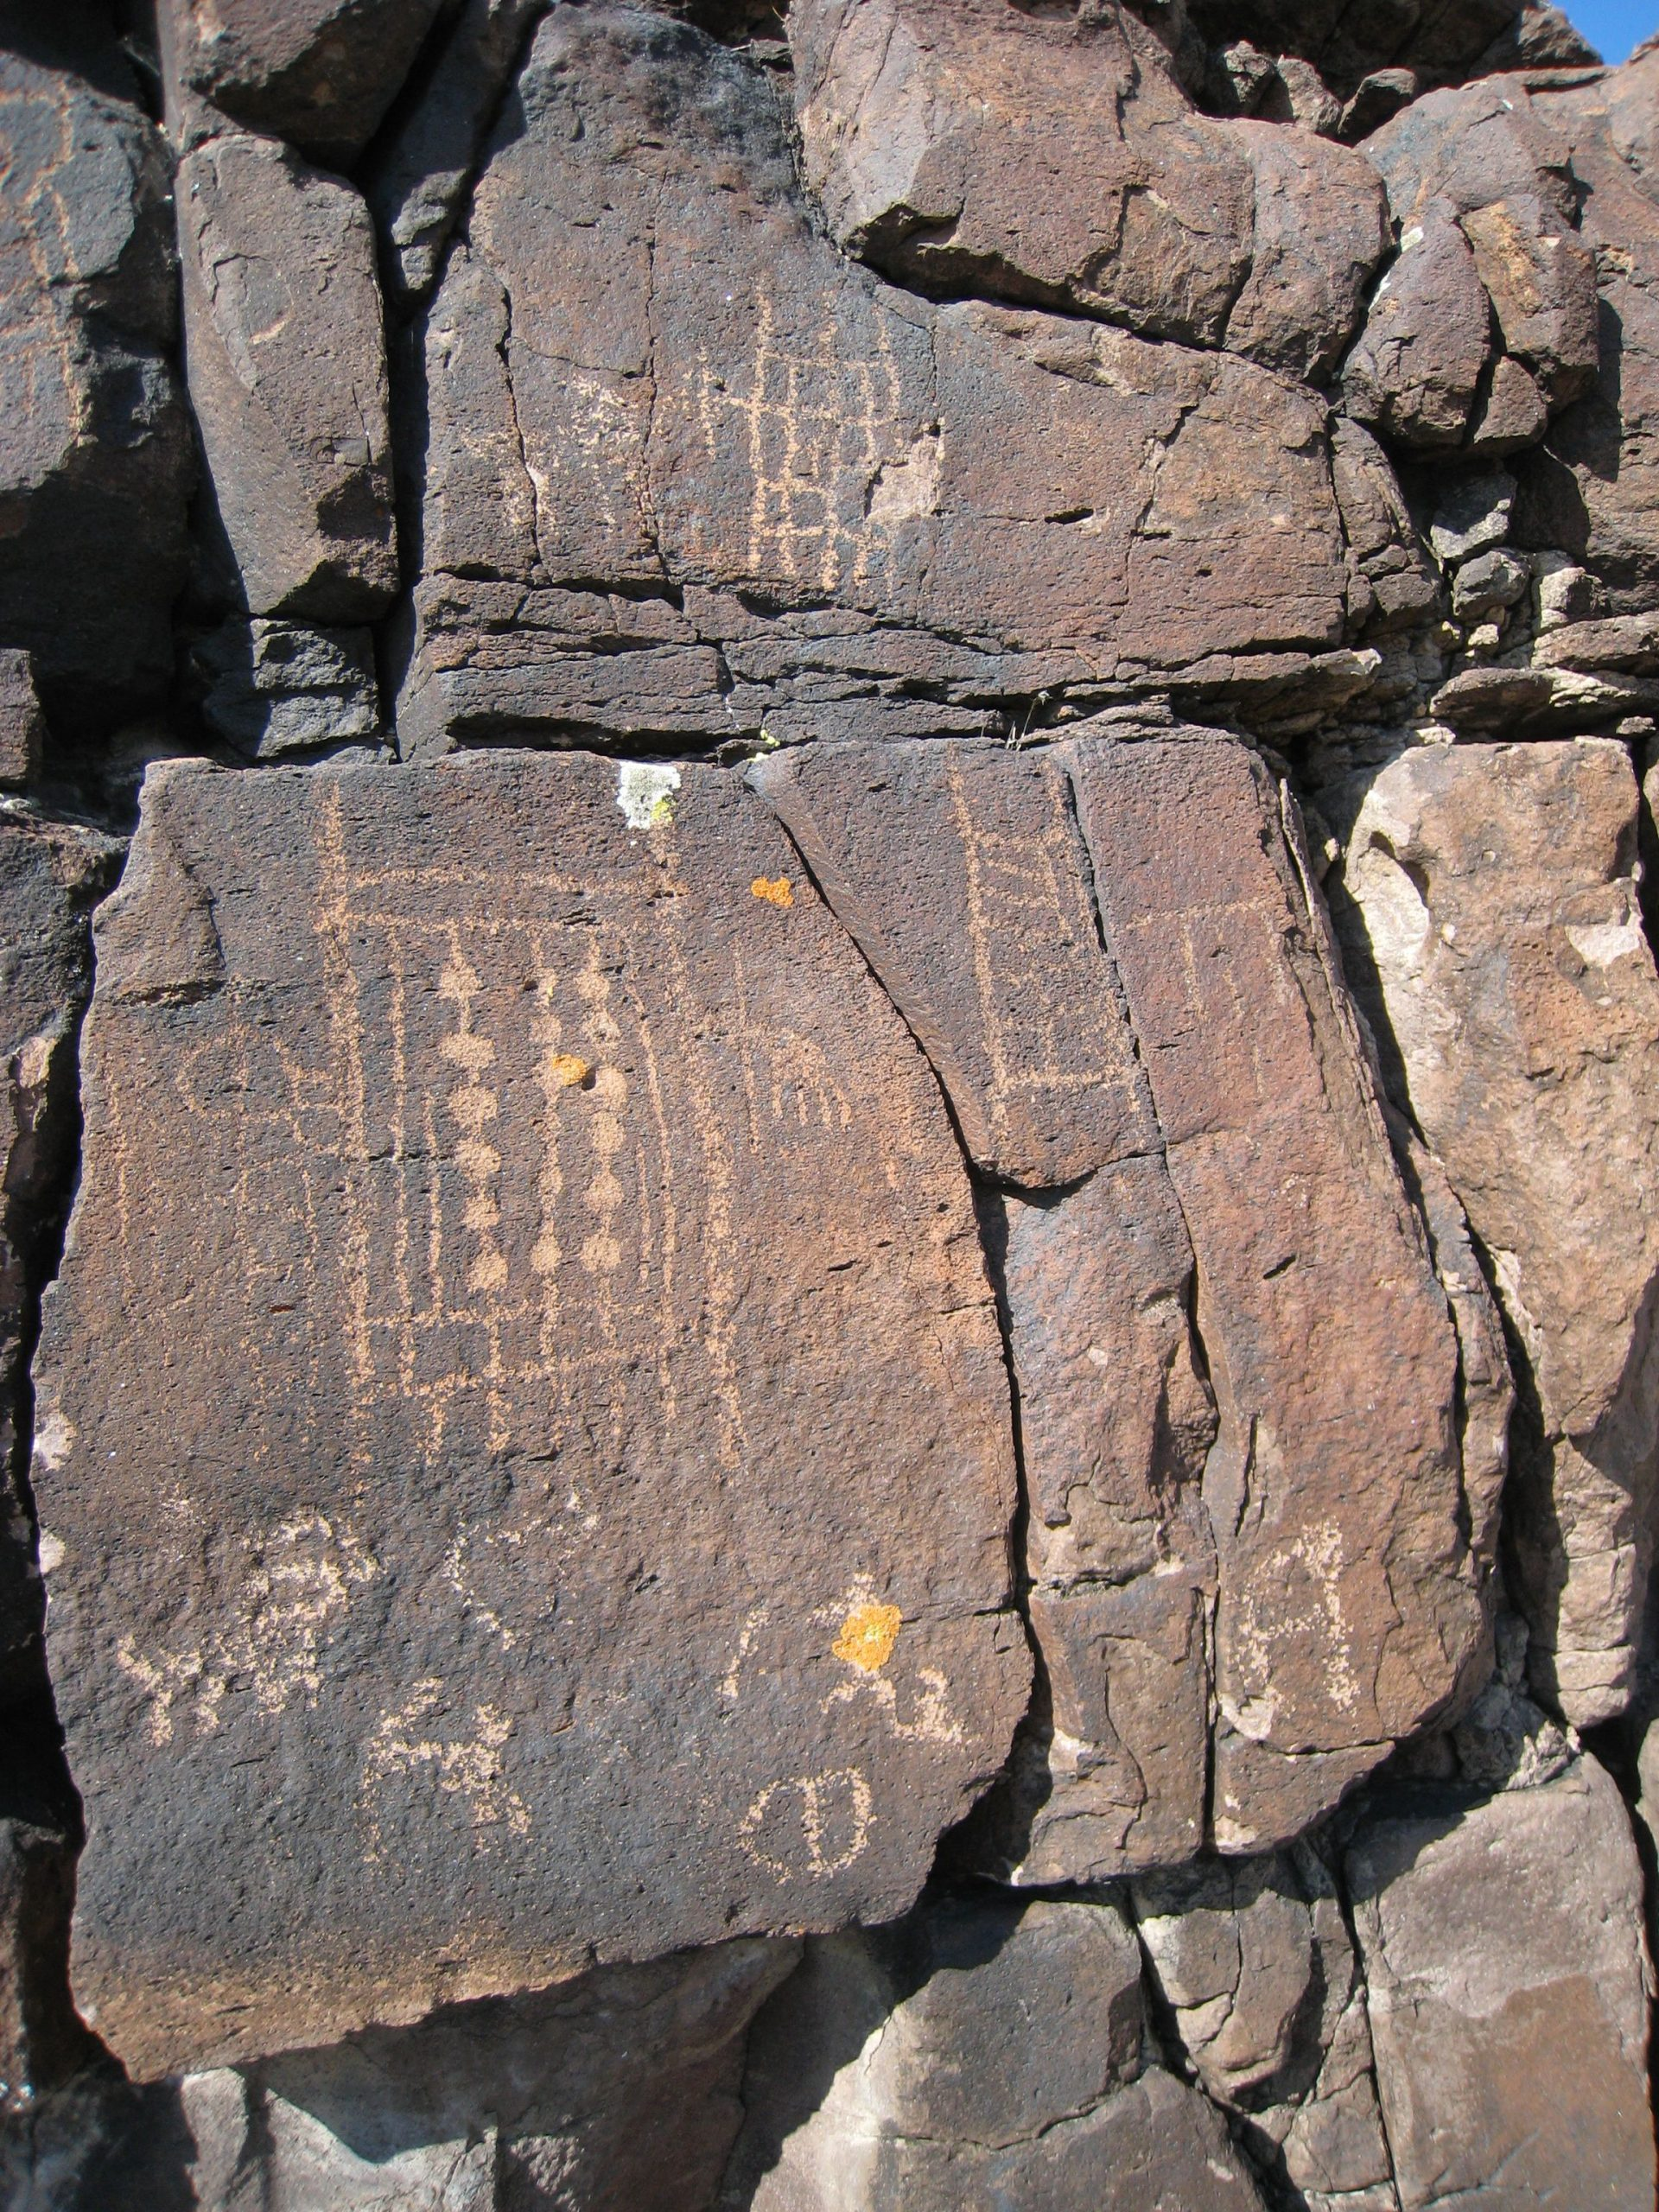 Sightseeing Place to Visit In Nevada, Red Rock Canyon National Conservation Area-Petroglyph Wall